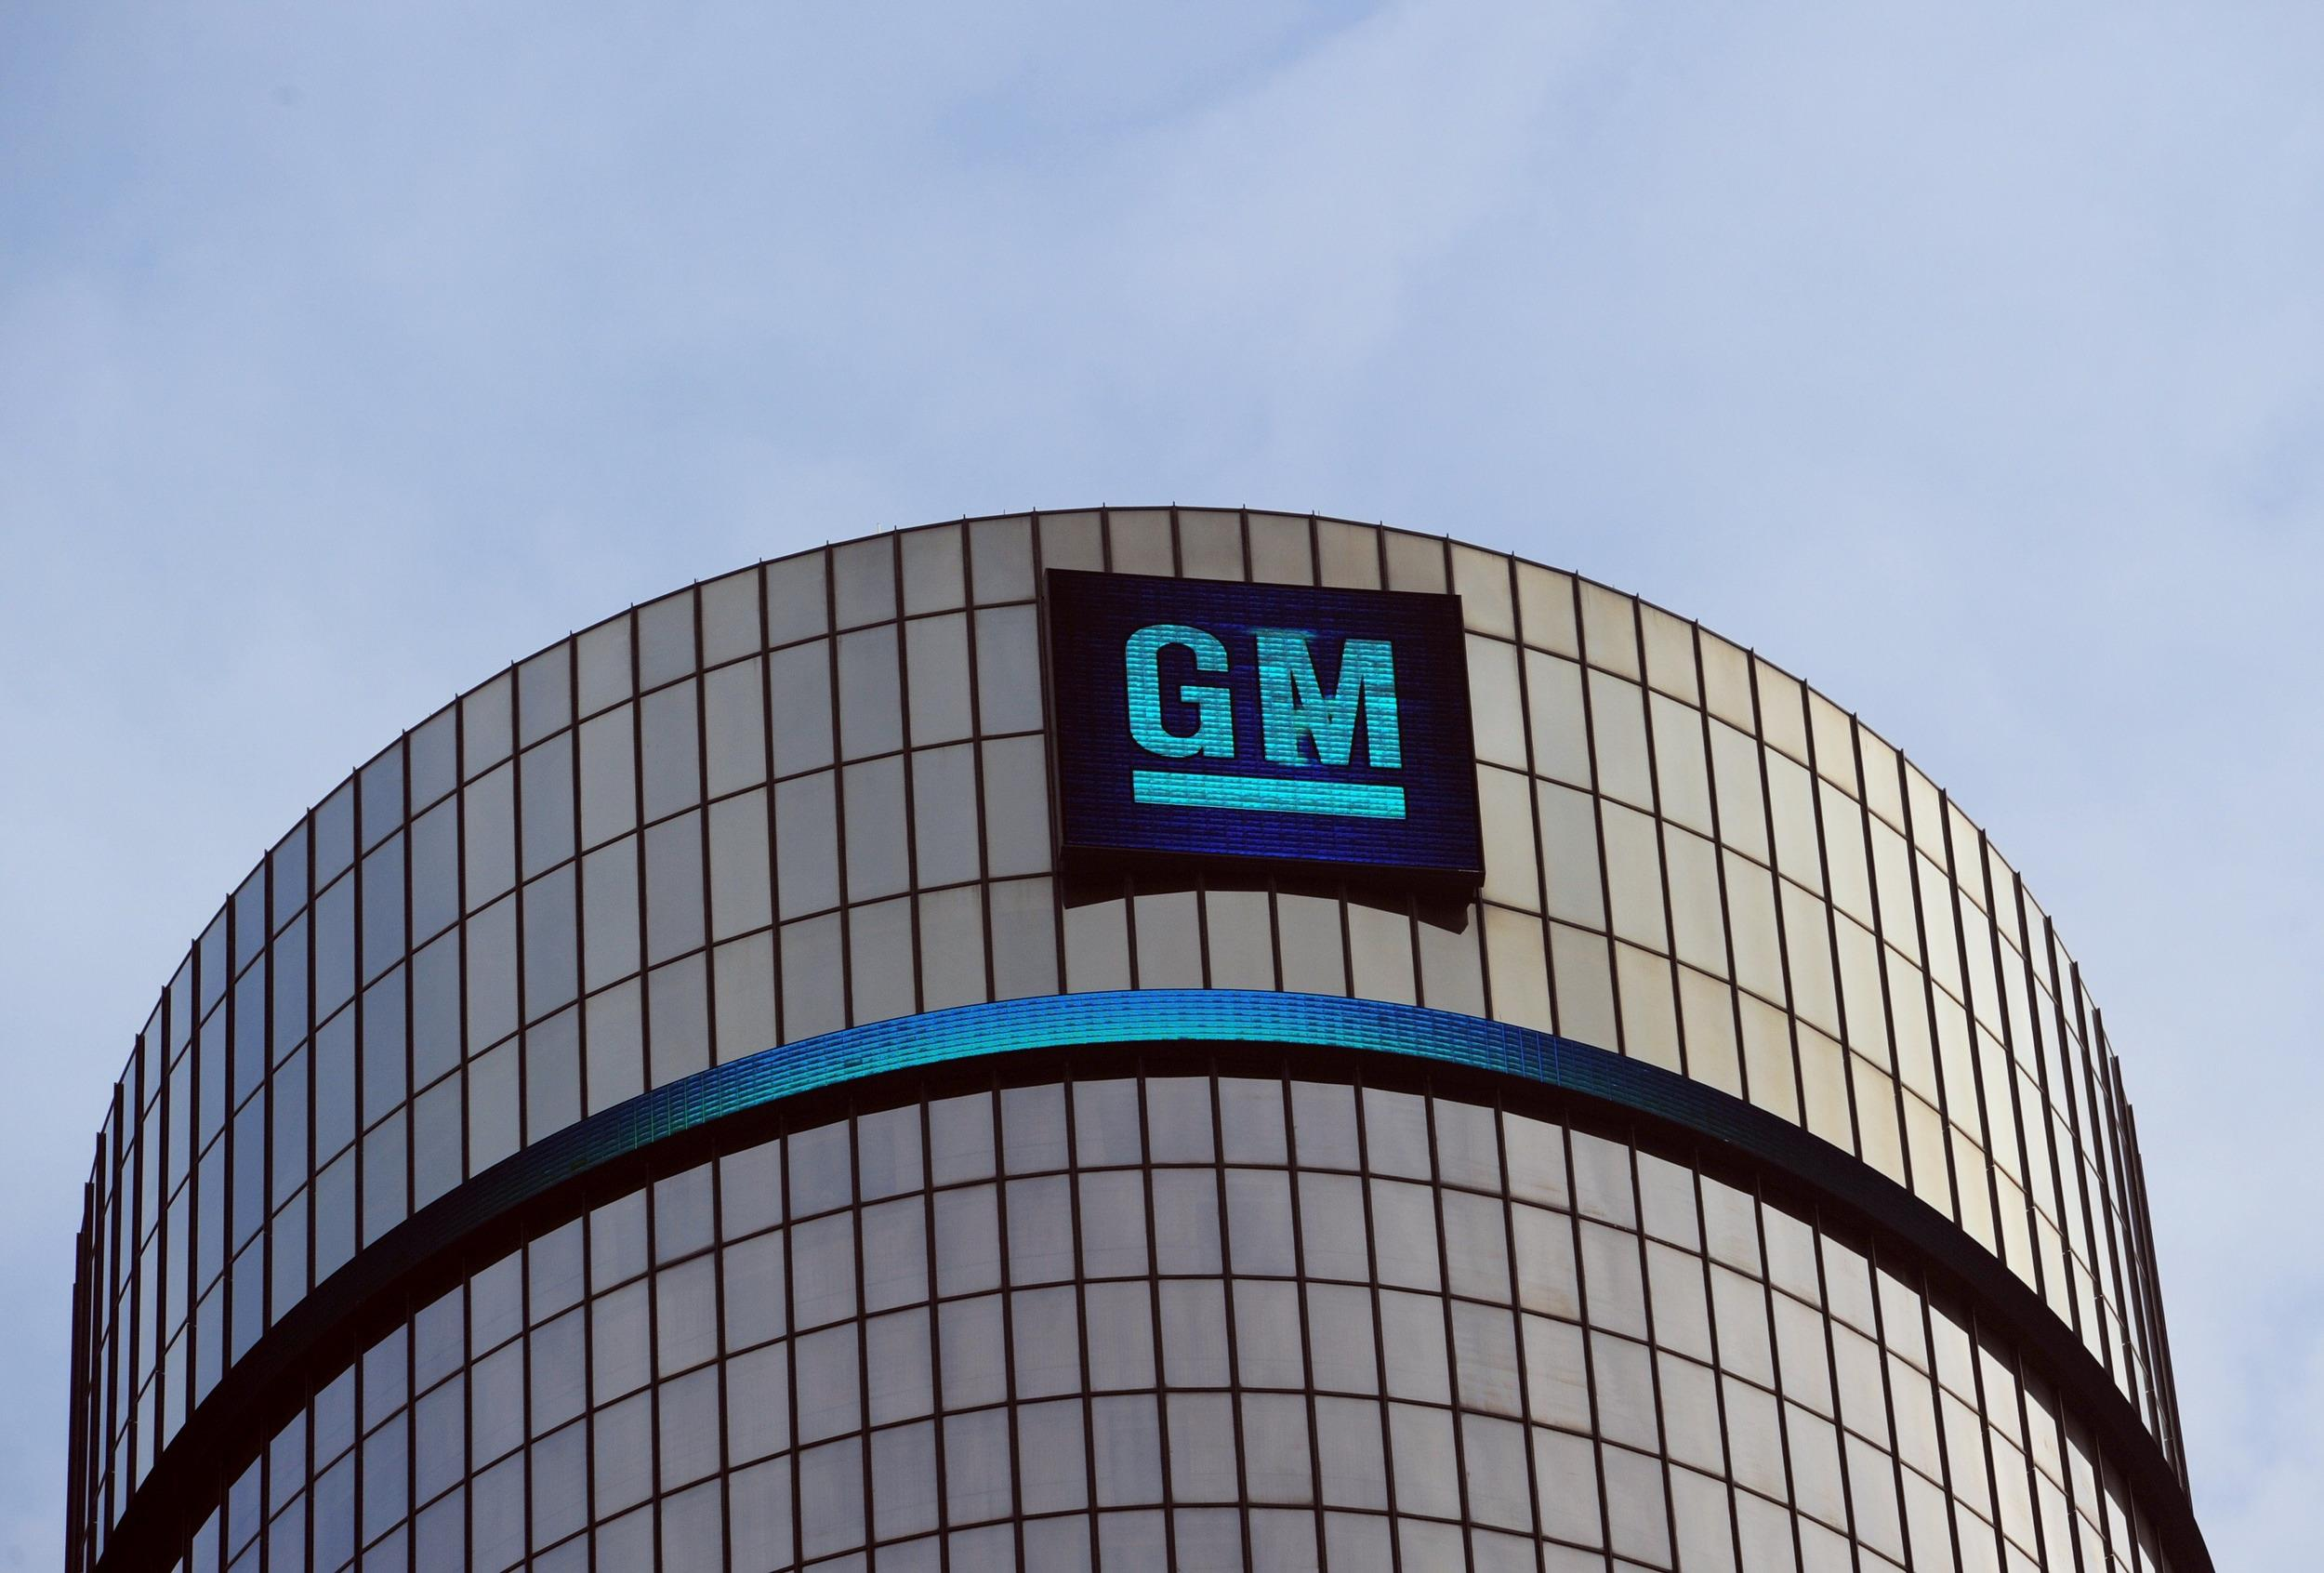 GM's first-quarter profit slipped on recall charges, but it still beat Wall Street estimates, helped by pricing.